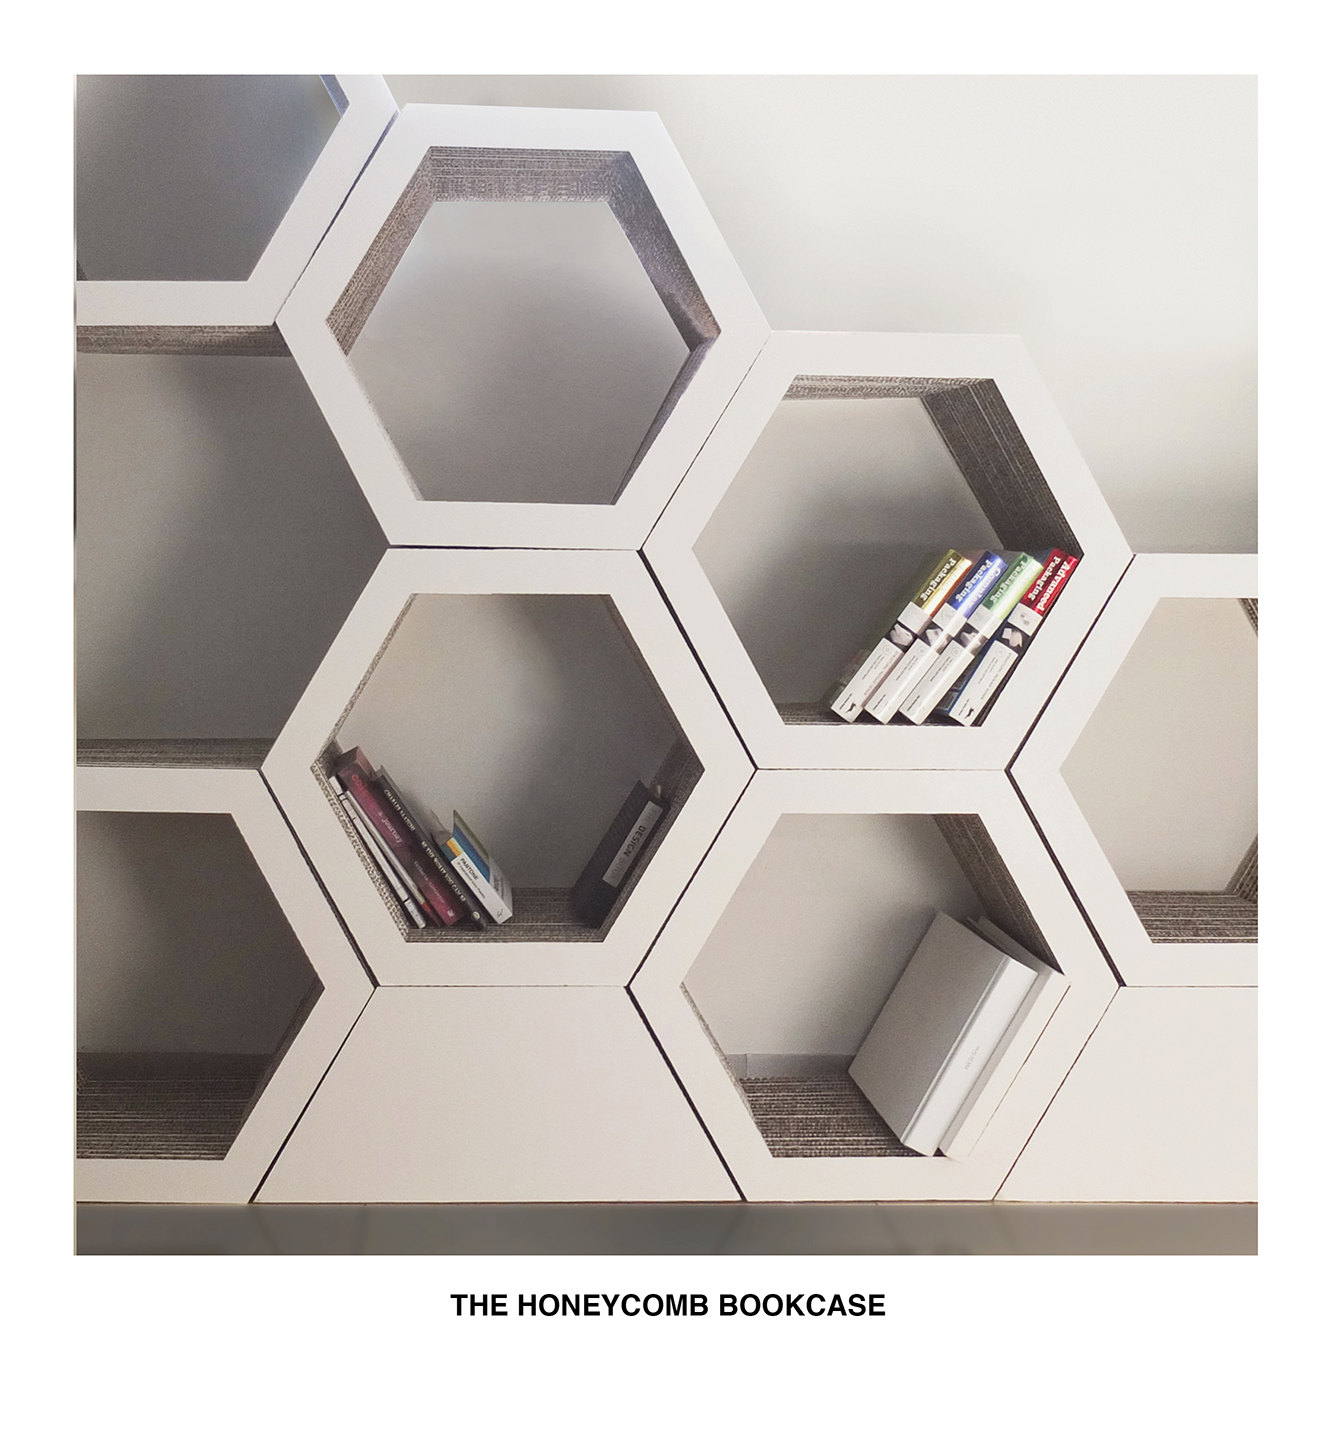 flow the urban ladder for shelving bookshelf getmycouch gadget wonderful honeycomb pics diy australia photo creative by sale awesome bookcases on